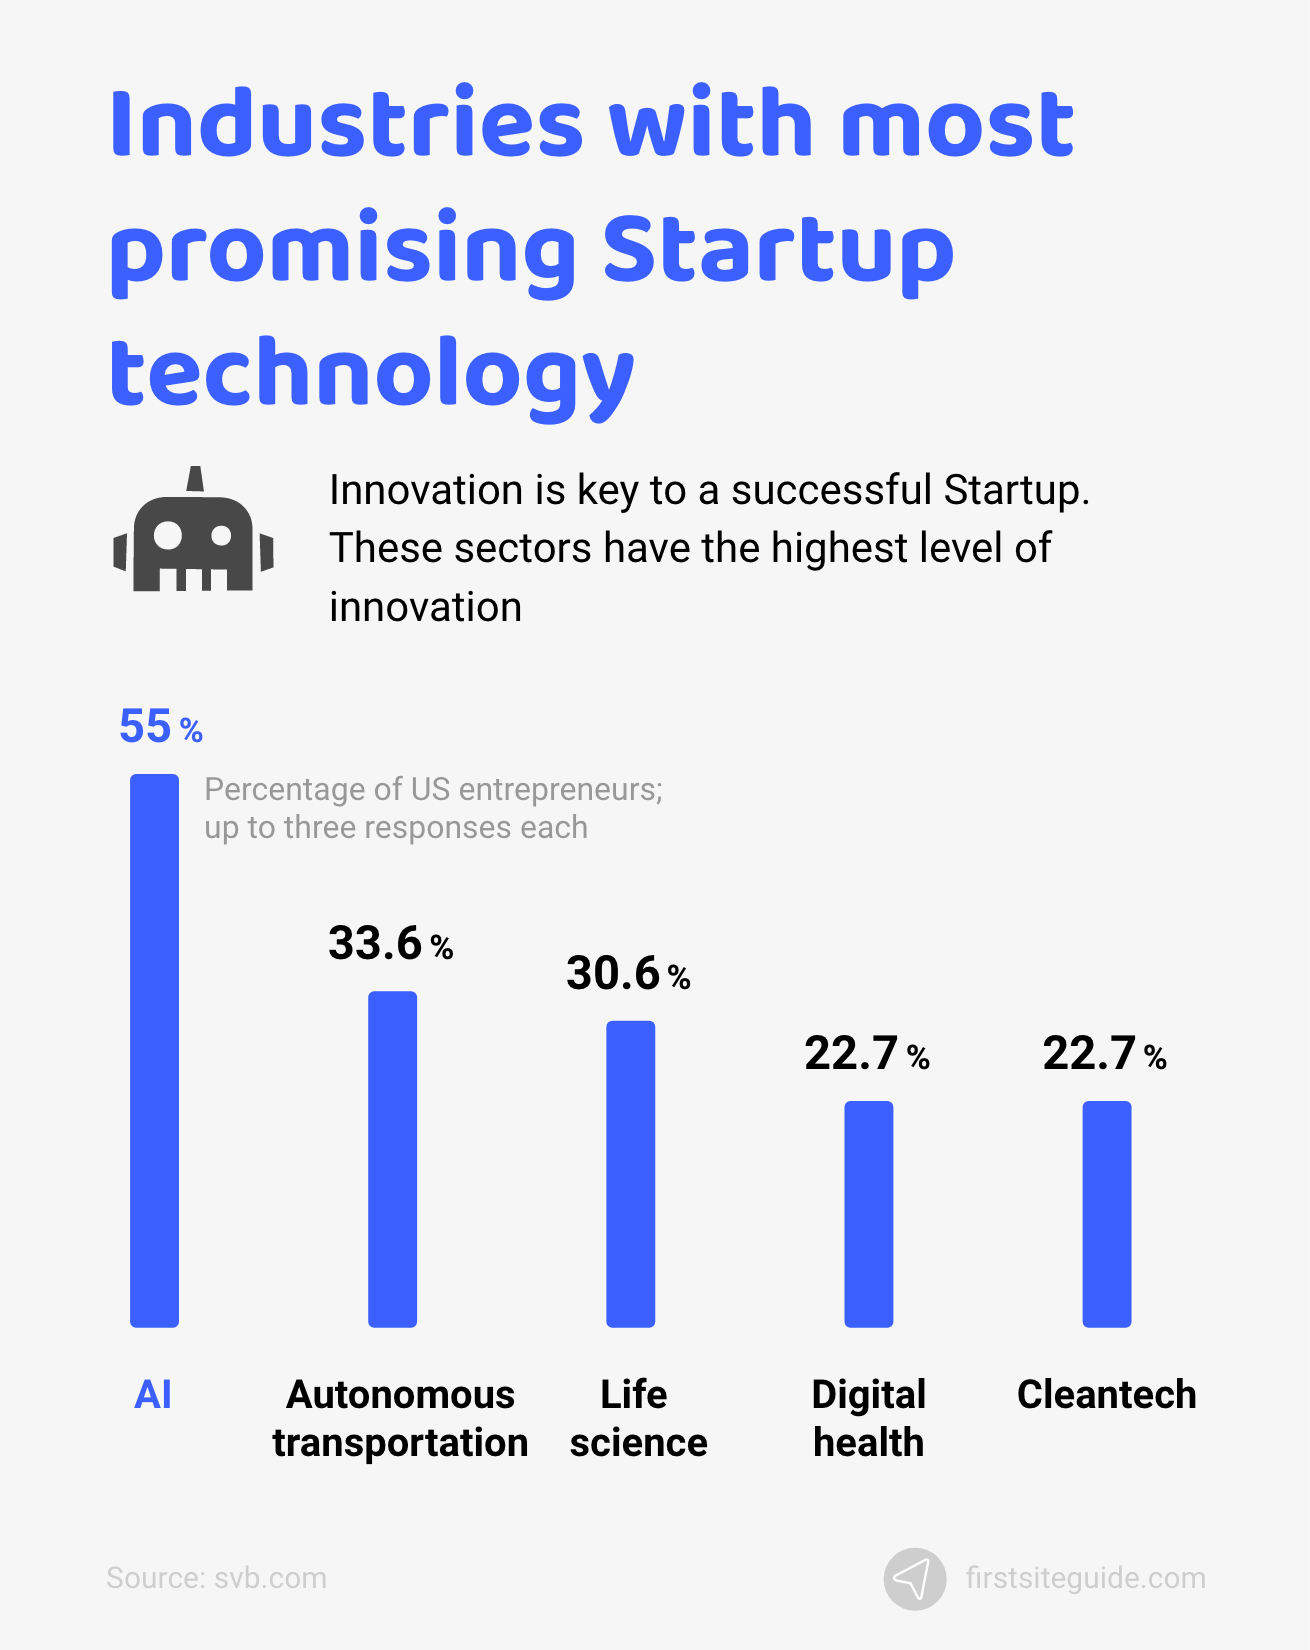 Industries with most promising Startup technology